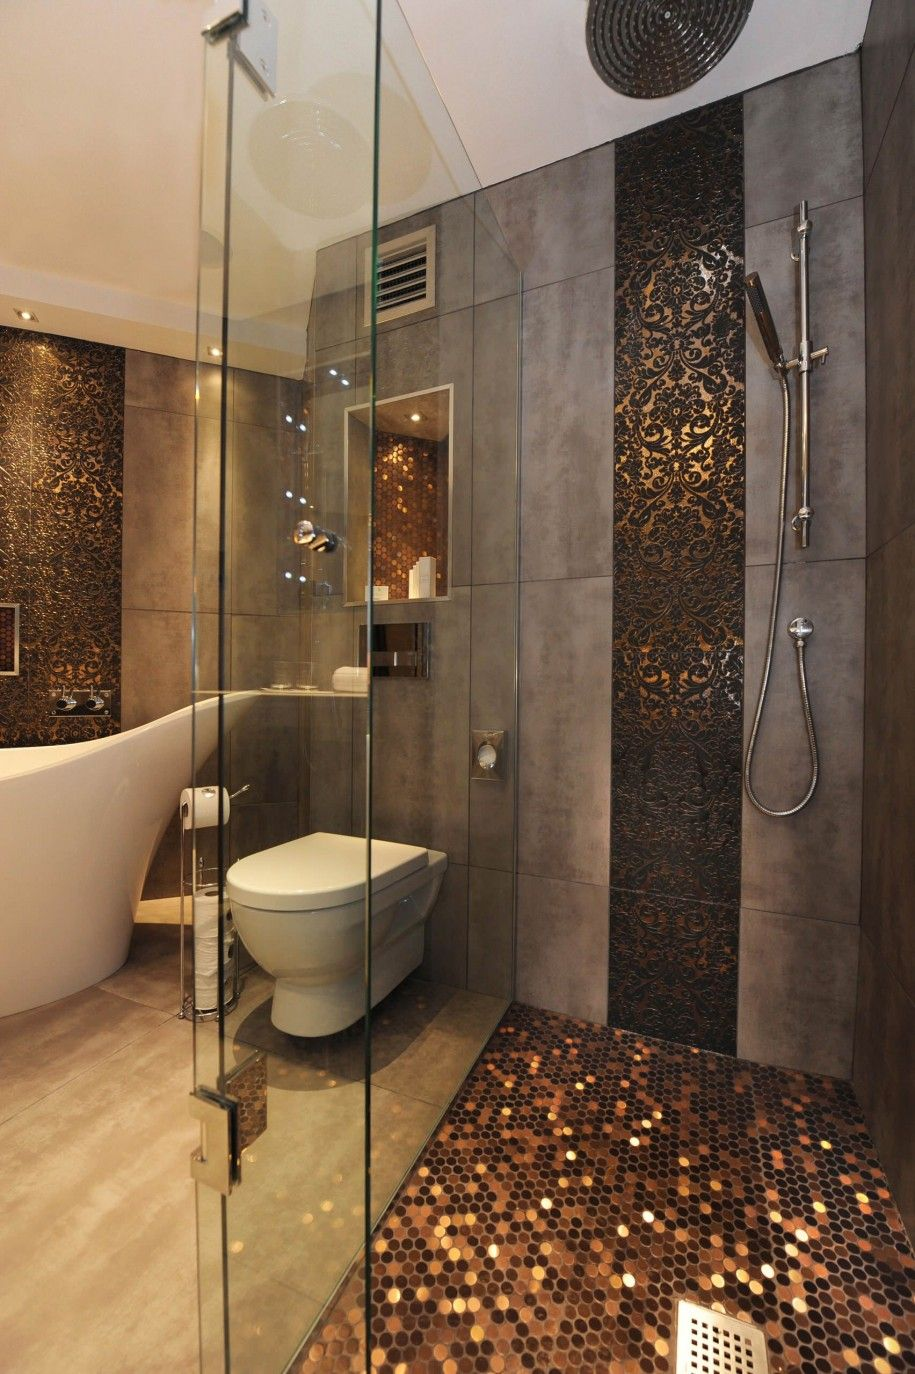 Bathroom rain showers -  This Bathroom Is All About The Glitz People Couldn T Get Enough Of The Copper Hued Tile And The Custom Damask Accents On The Wall The Shower Is Level